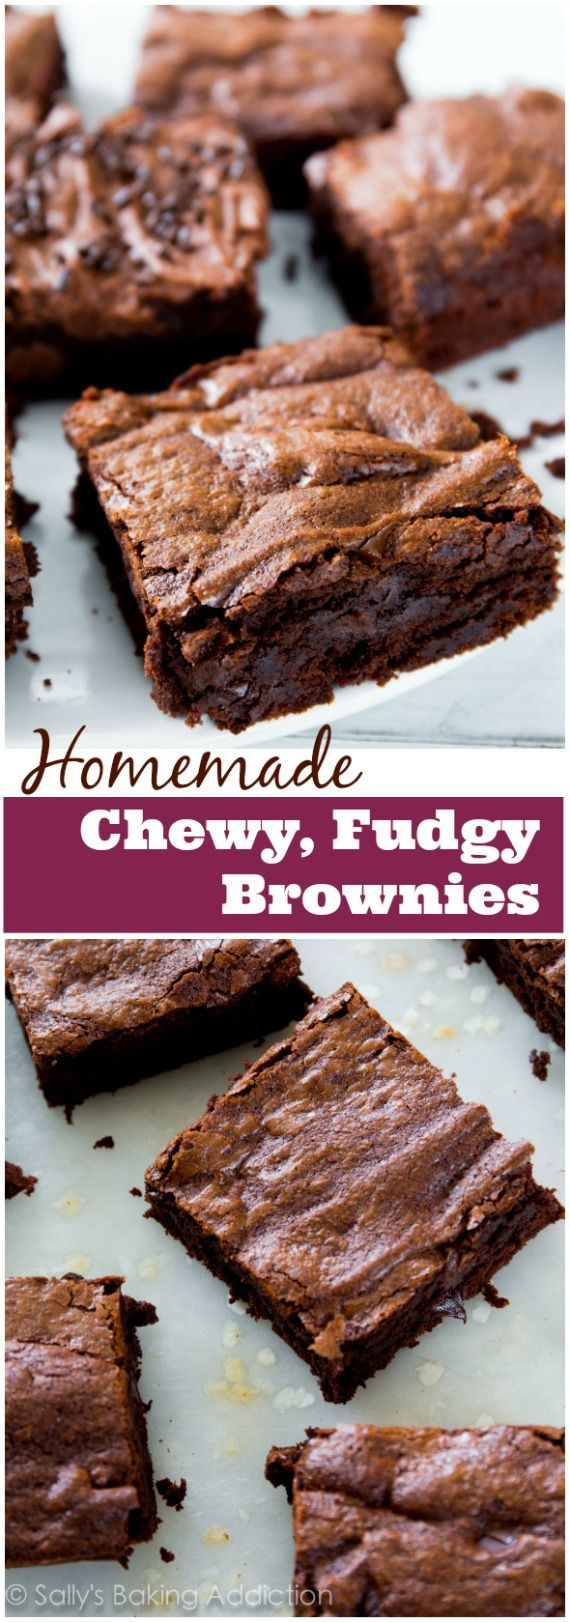 "Chewy Fudgy Homemade Brownies. - Sallys Baking Addiction...""My absolute favorite from-scratch brownie recipe! Rich, dense, thick - you will never use a box mix again!"""